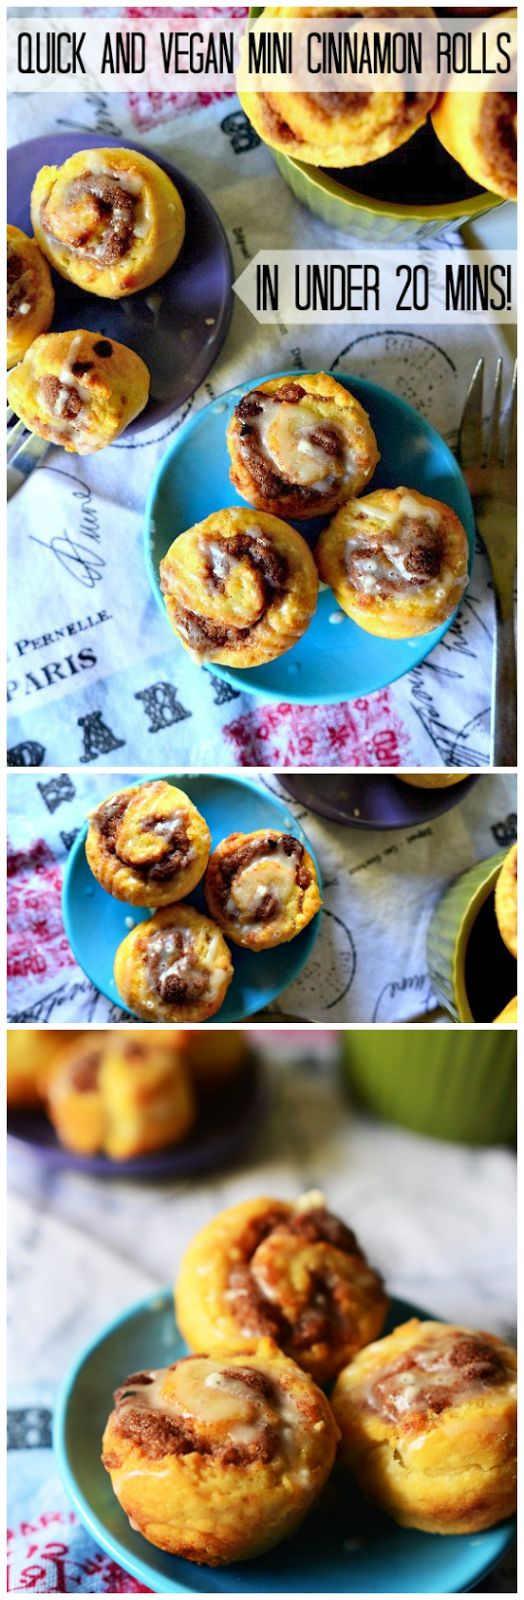 Quick and Vegan Biscuit Cinnamon Rolls - These easy vegan cinnamon rolls are made out of biscuit dough so they come together quickly. They're perfect a quick and easy vegan breakfast! Click here for the recipe or pin for later <3